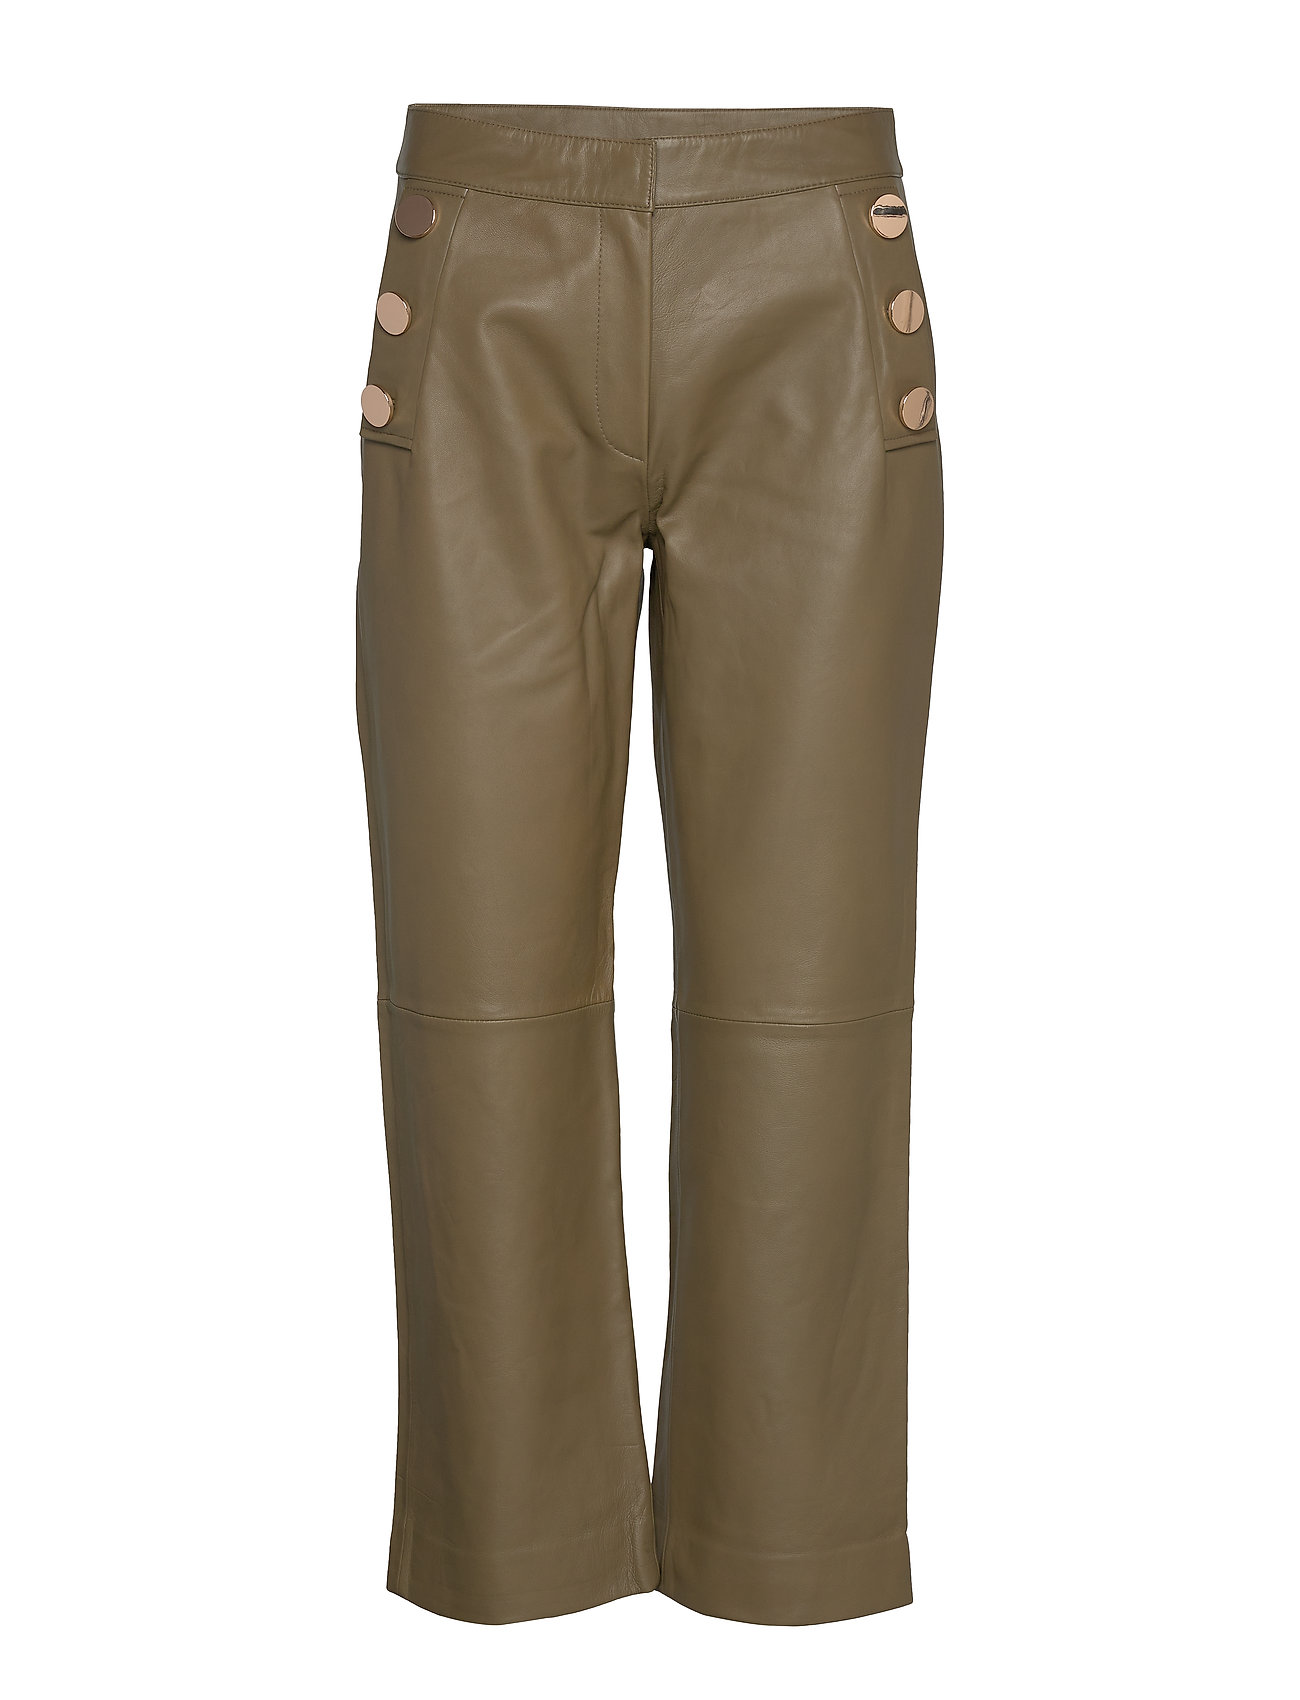 Image of Day Scilla Leather Leggings/Bukser Grøn Day Birger Et Mikkelsen (3414562447)